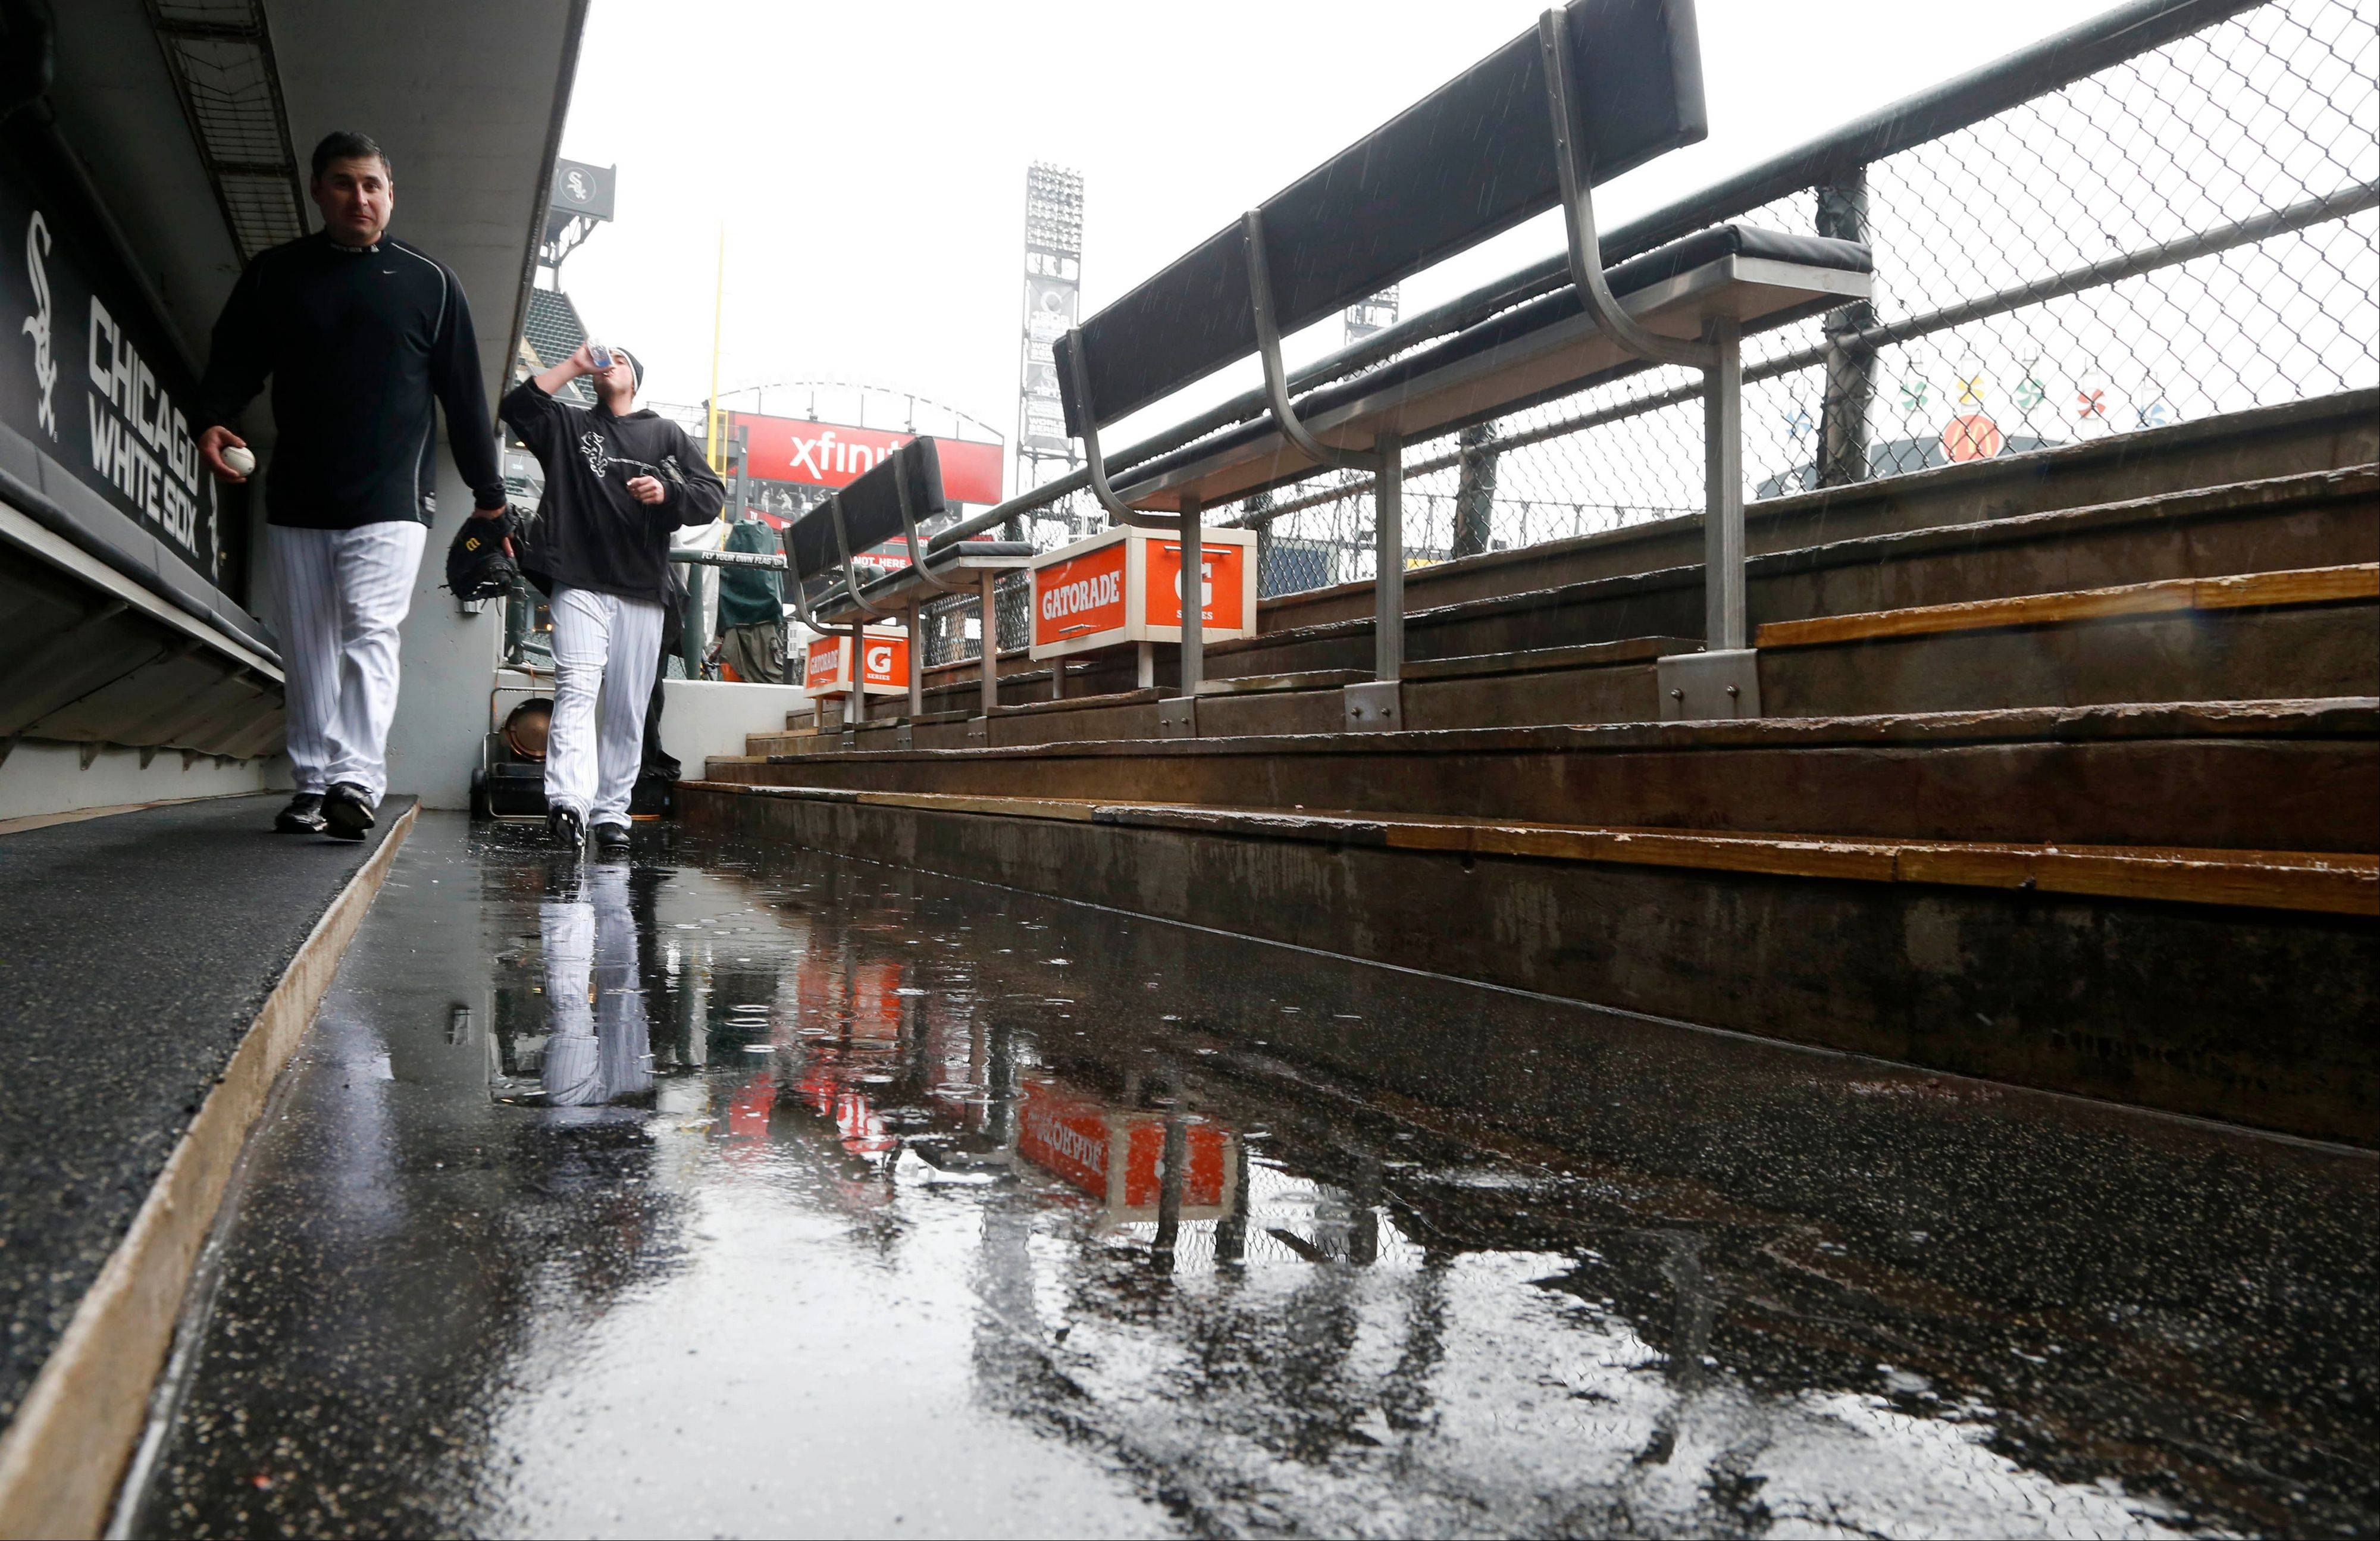 Chicago White Sox's bullpen coach Bobby Thigpen, left, and relief pitcher Addison Reed walk in and around the standing water in the dugout before a postponed baseball game that was called due to rain between the White Sox and the Cleveland Indians Tuesday, April 23, 2013, in Chicago. (AP Photo/Charles Rex Arbogast)